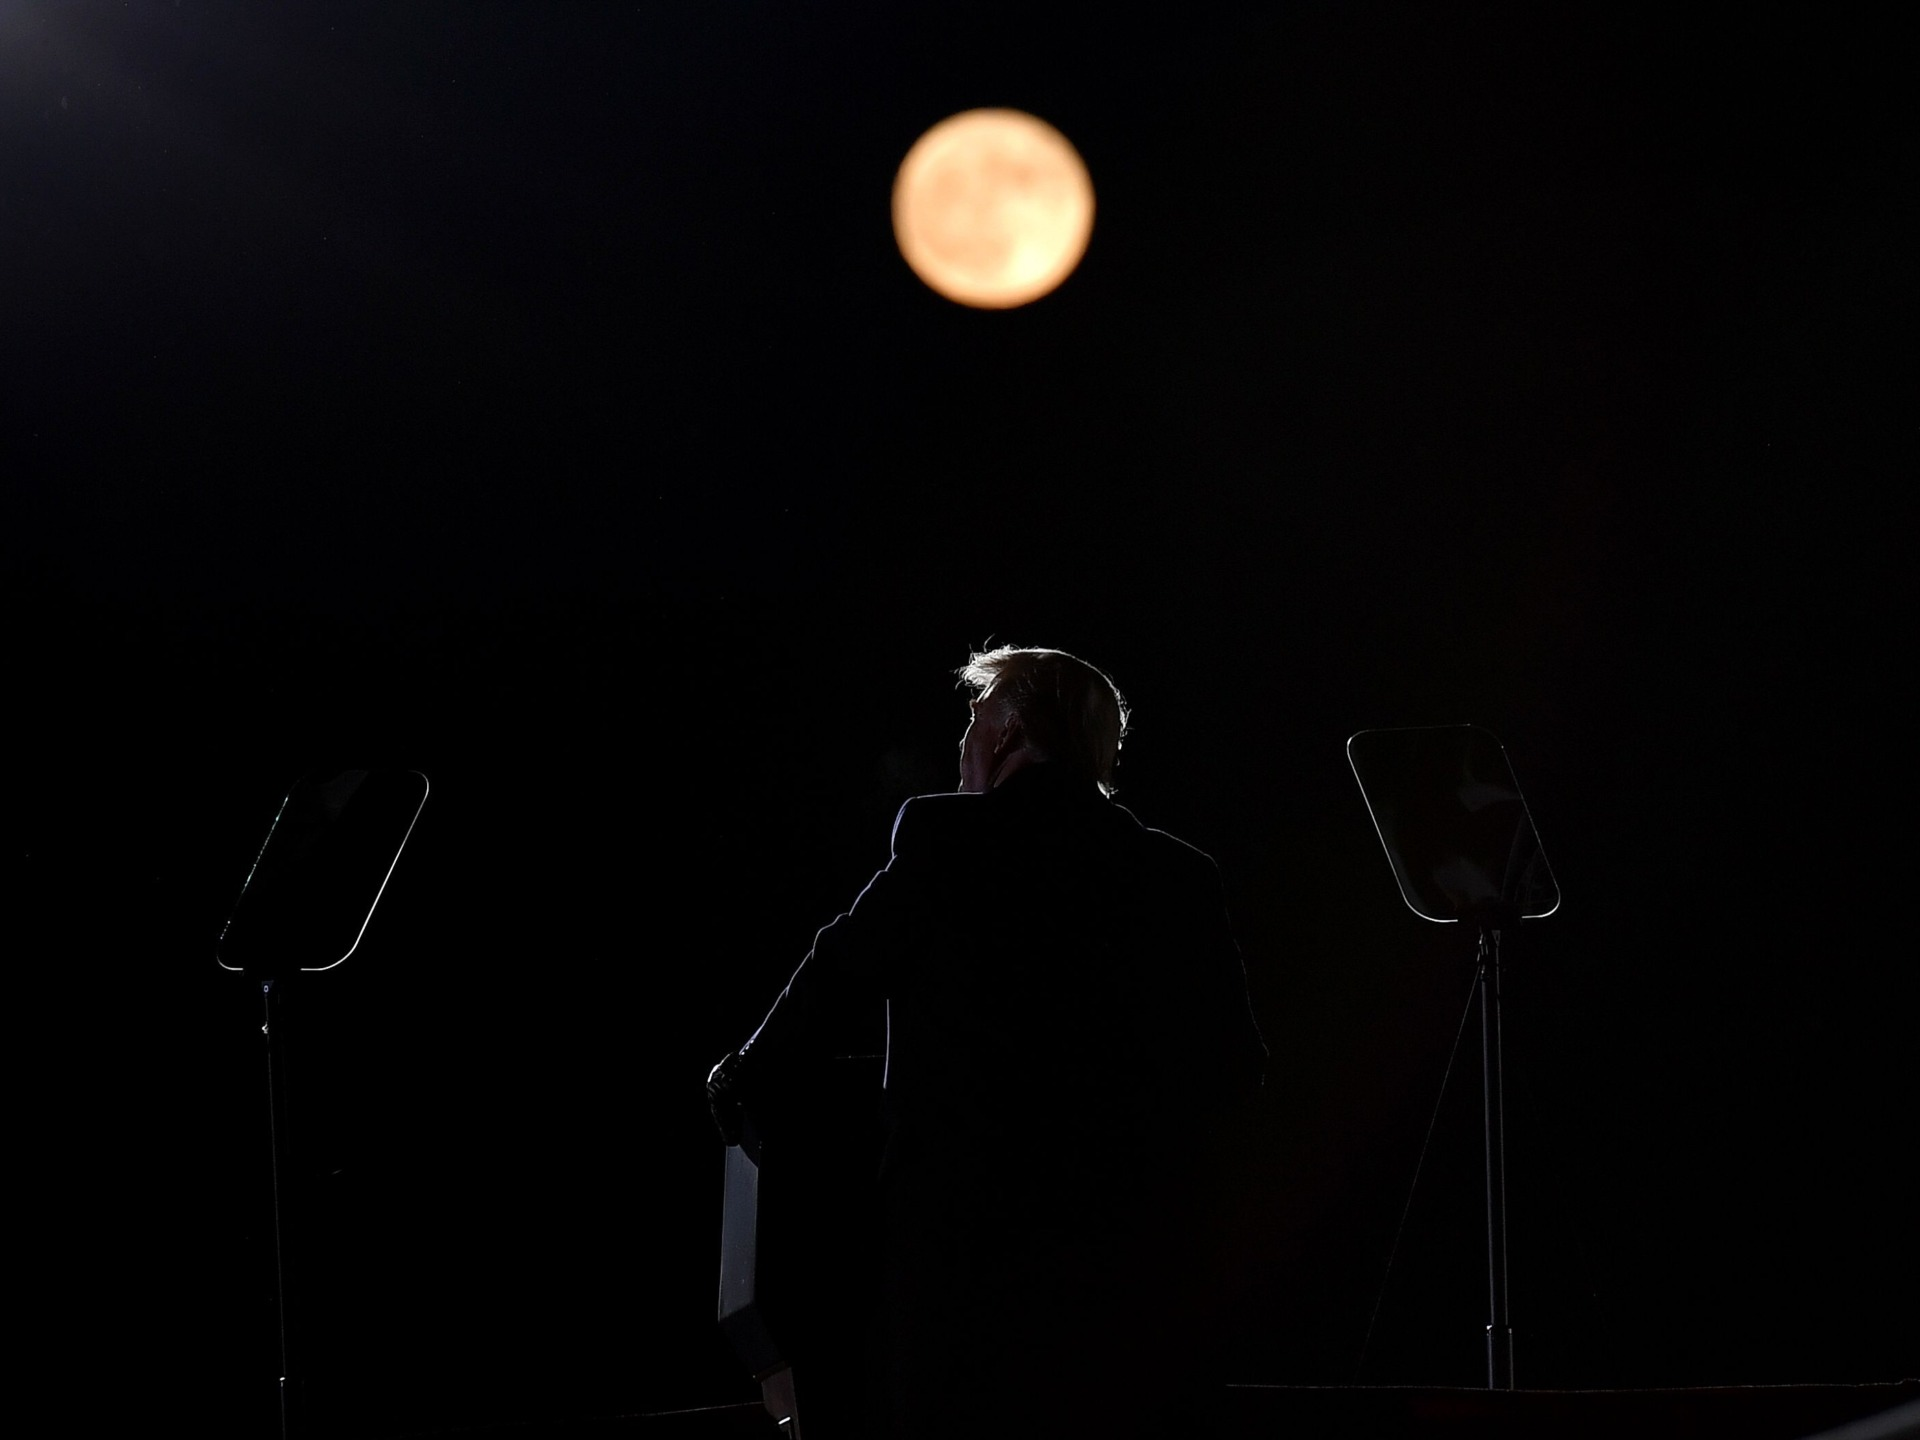 Trump full moon Pennsylvania (Mandel Ngan / Getty)